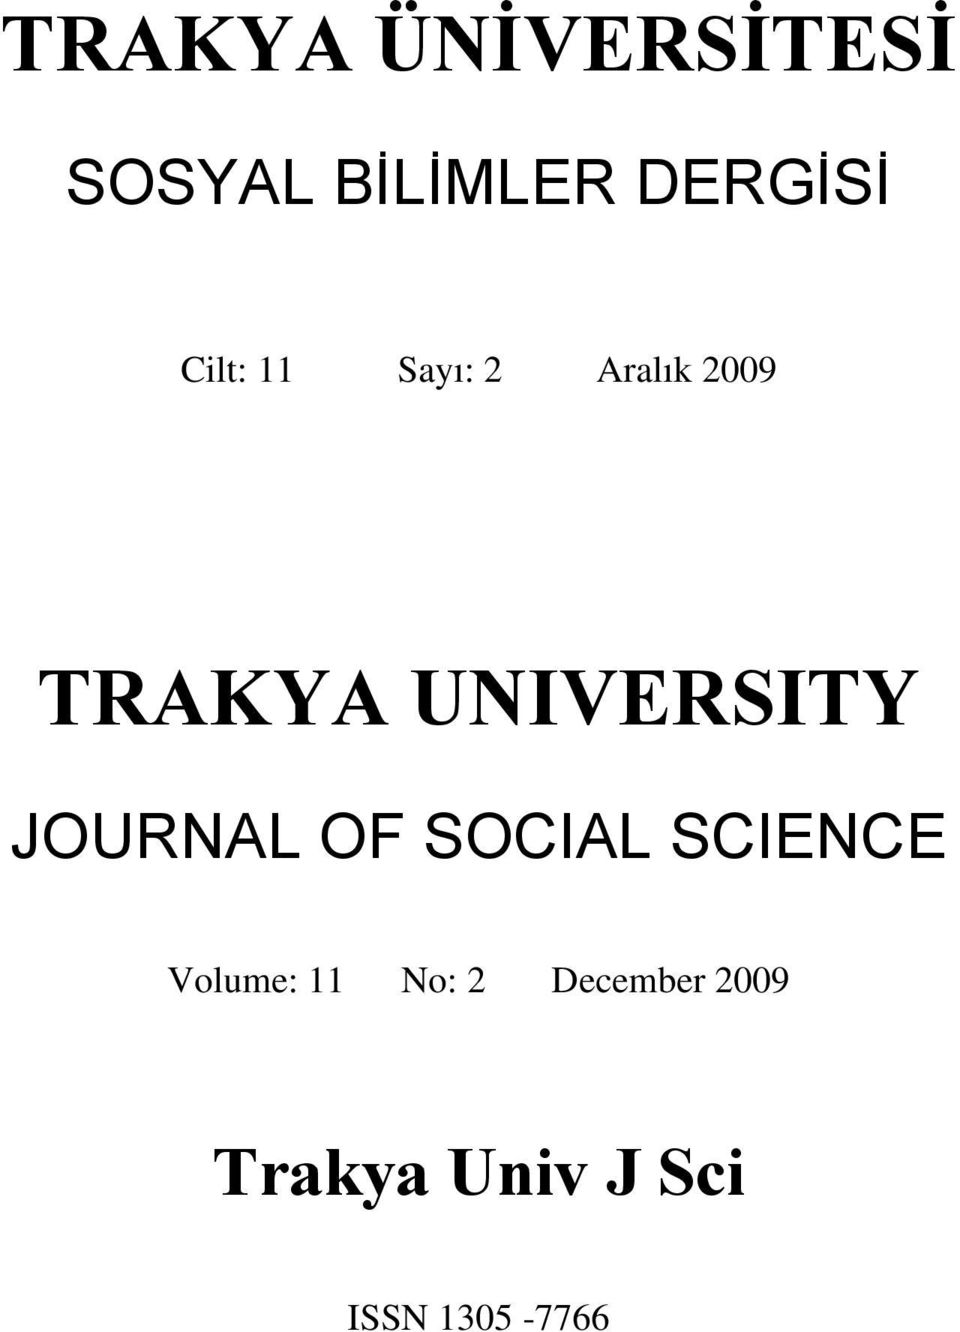 UNIVERSITY JOURNAL OF SOCIAL SCIENCE Volume: